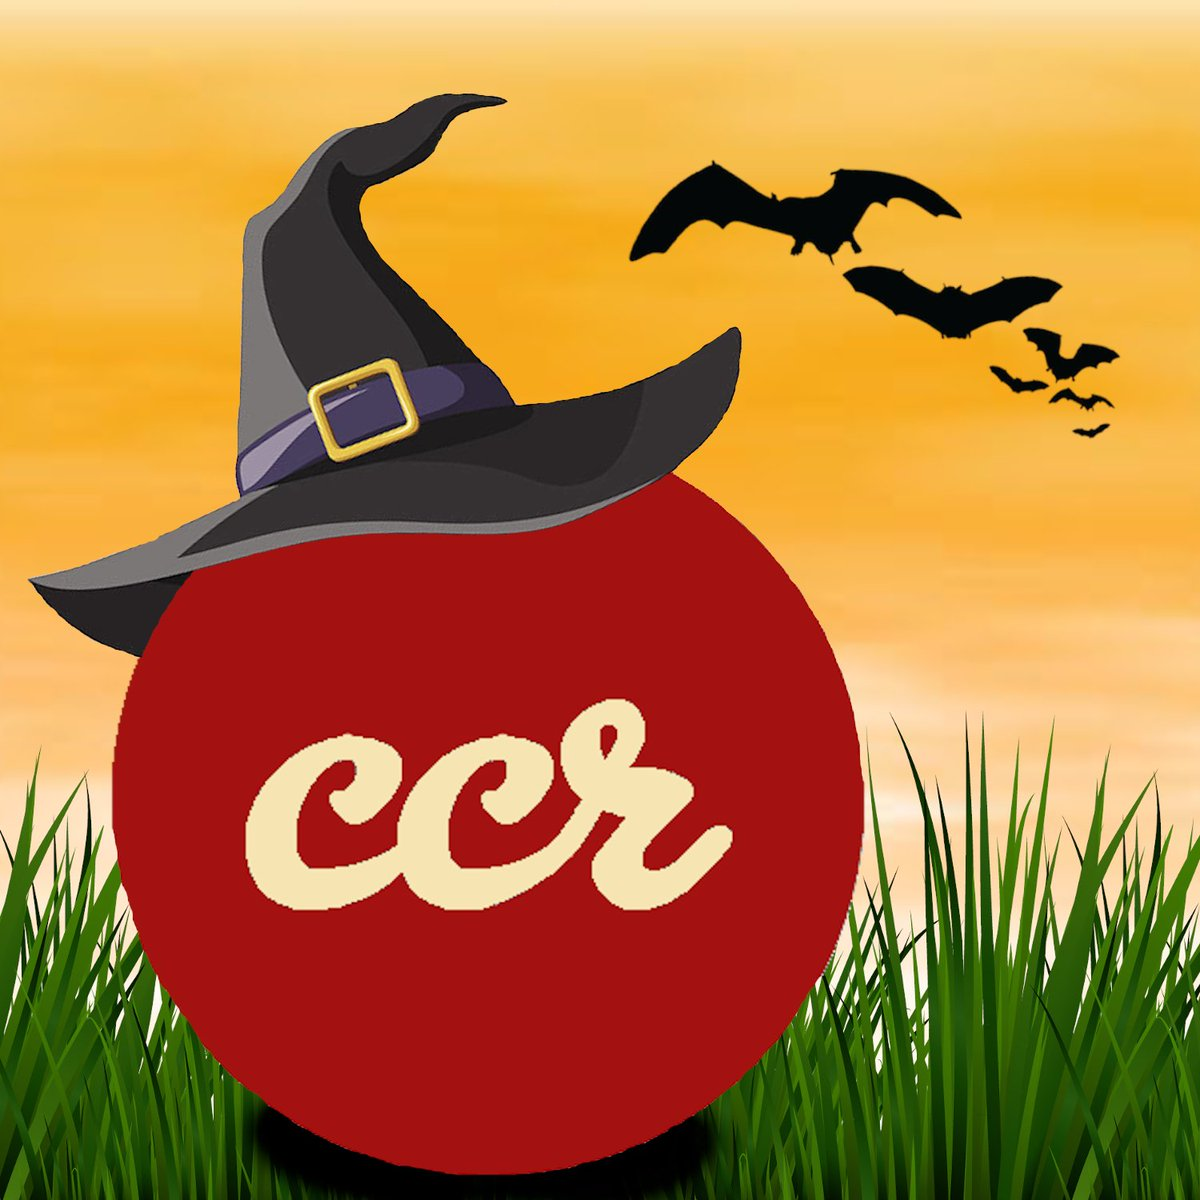 No trick, TREAT yourself by submitting your work! Send us your poems, essays, stories, or art to be considered. Happy Halloween! #ReadCCR #MemorableEnergetic #litmag #submissions Click the link below: